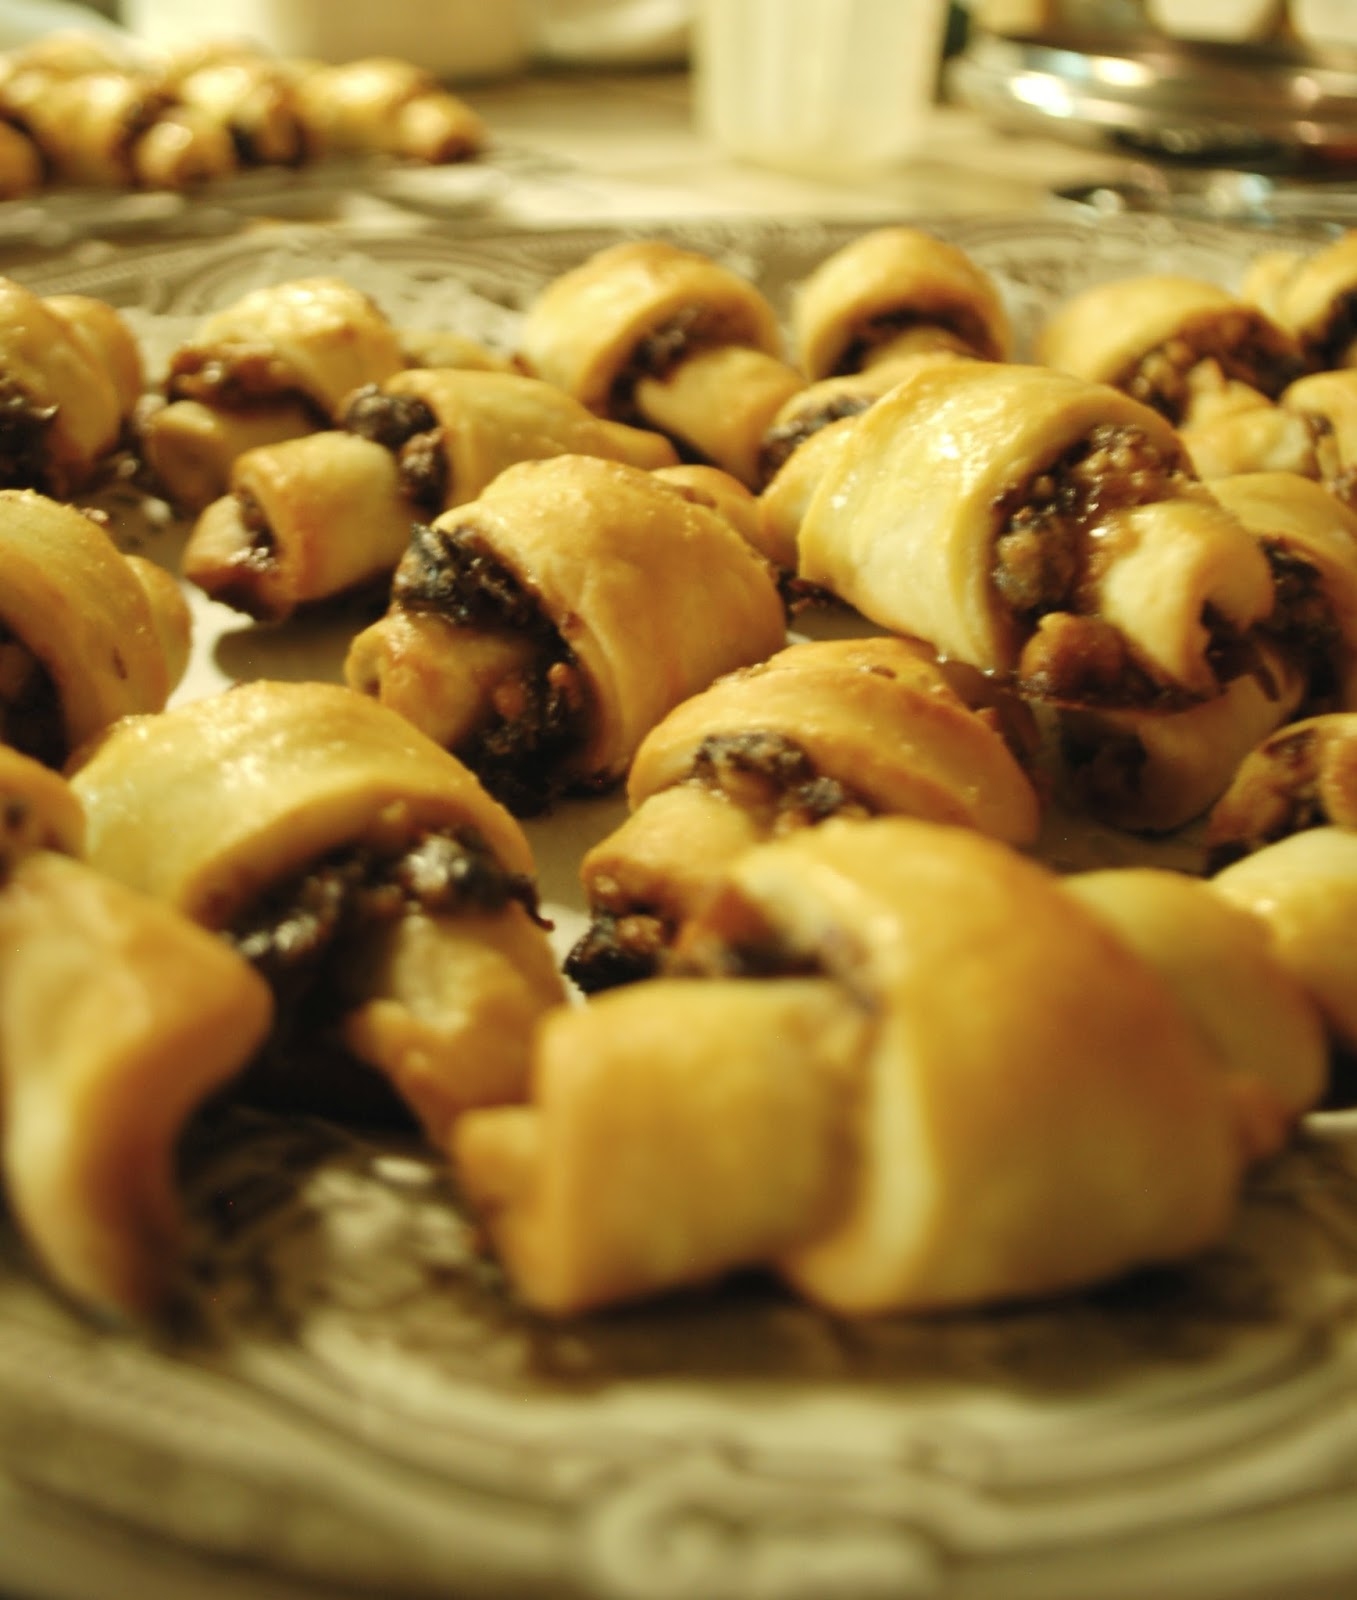 The Spice Garden: Bourboned Cherry and Walnut Rugelach